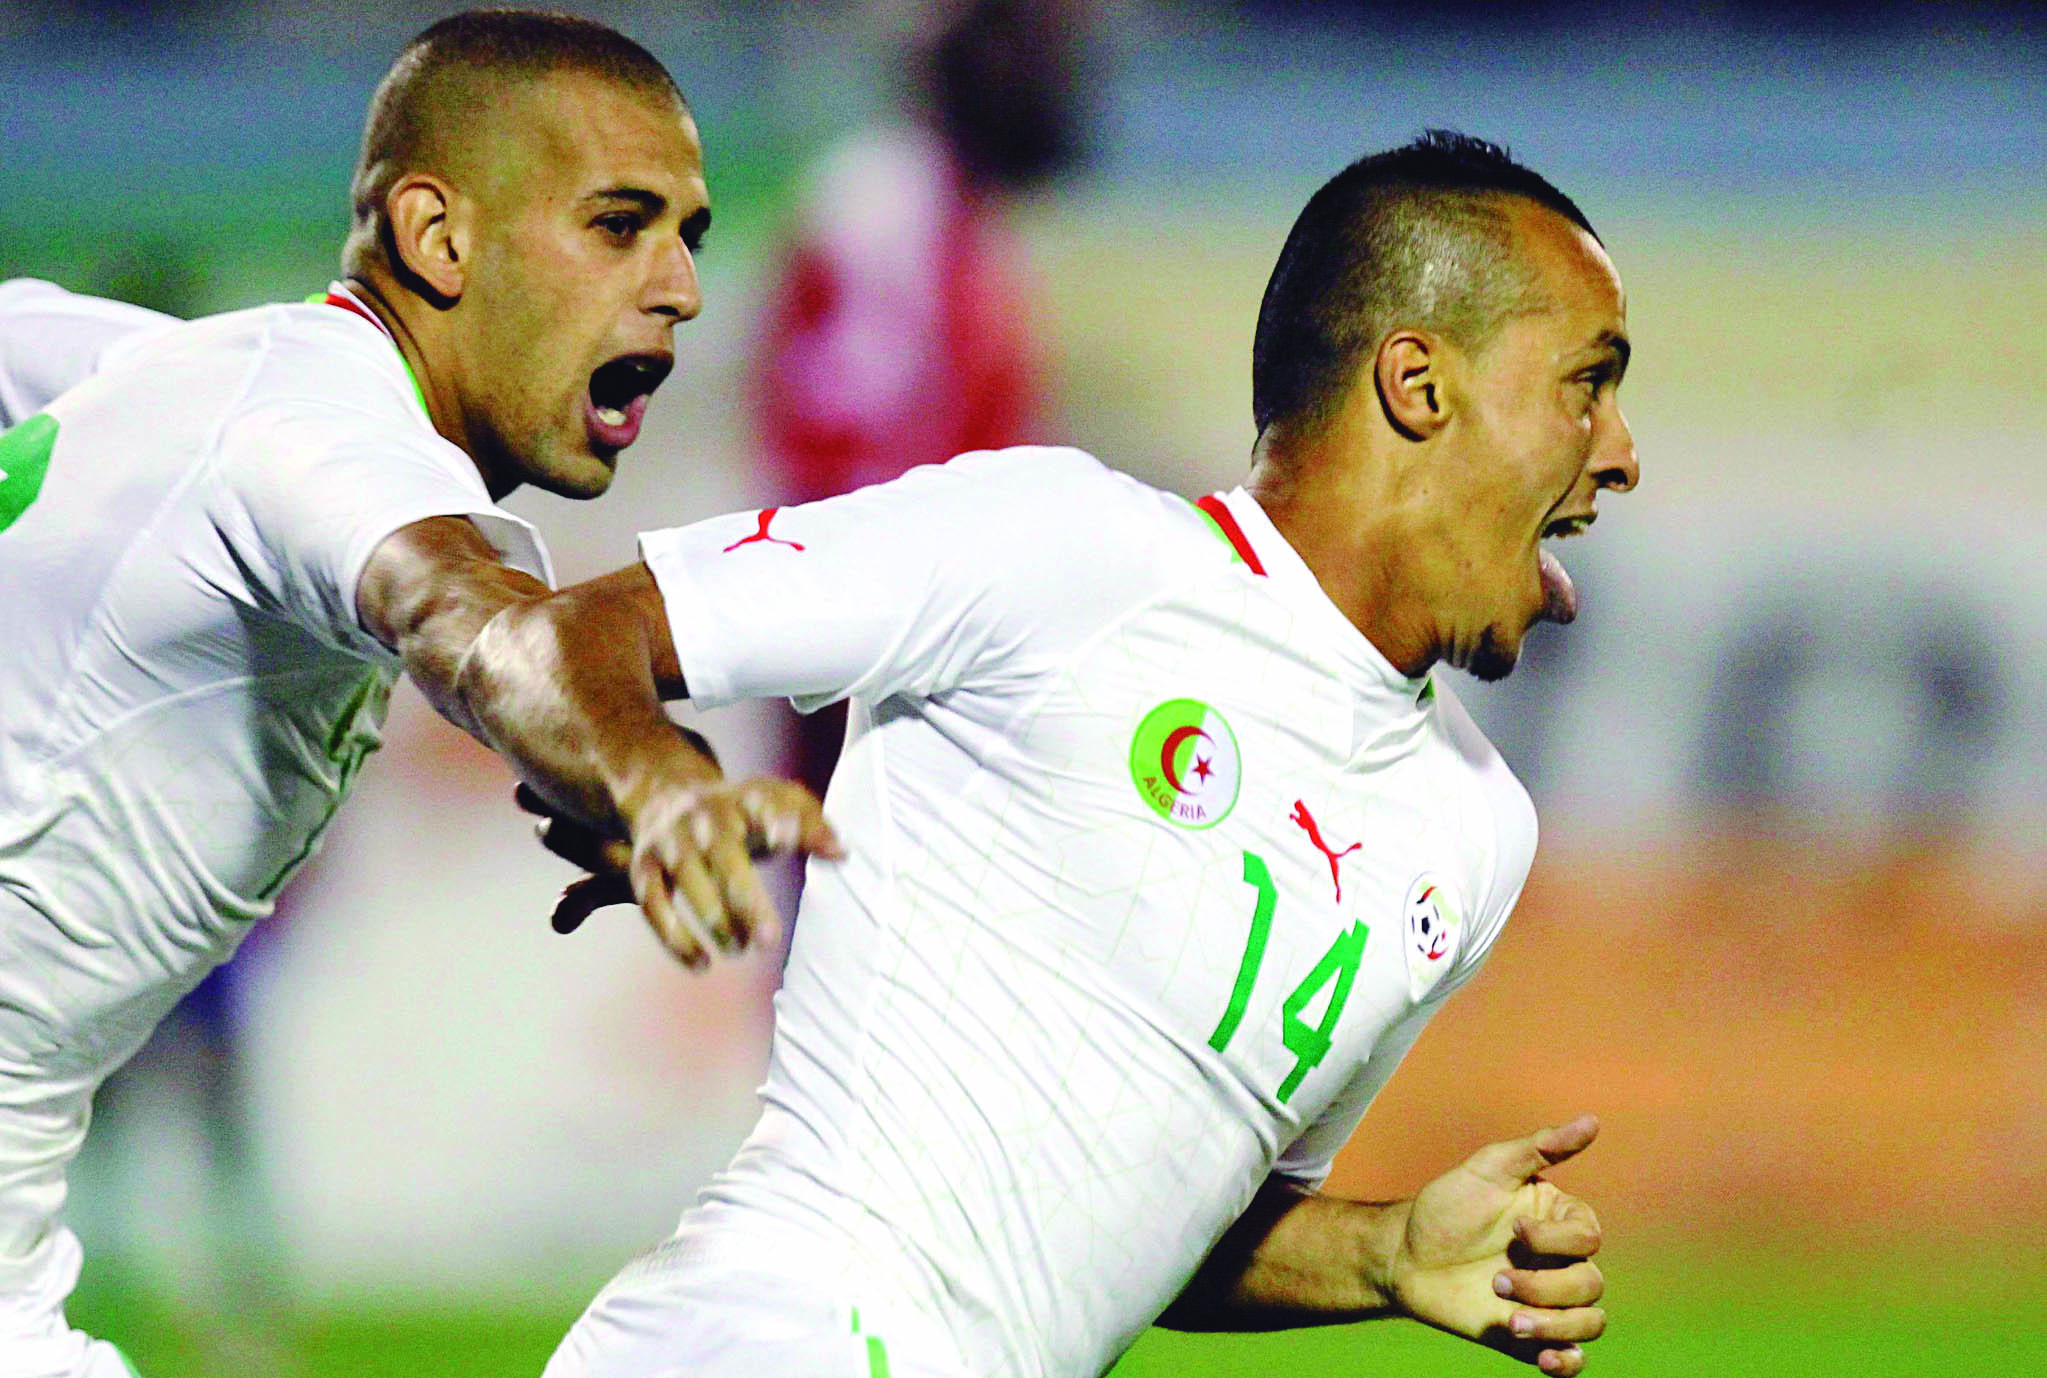 Algeria's Fouad and Slimani celebrate after scoring against Gambia during their African Nations Cup qualifying soccer match at Tacheker stadium in Blida